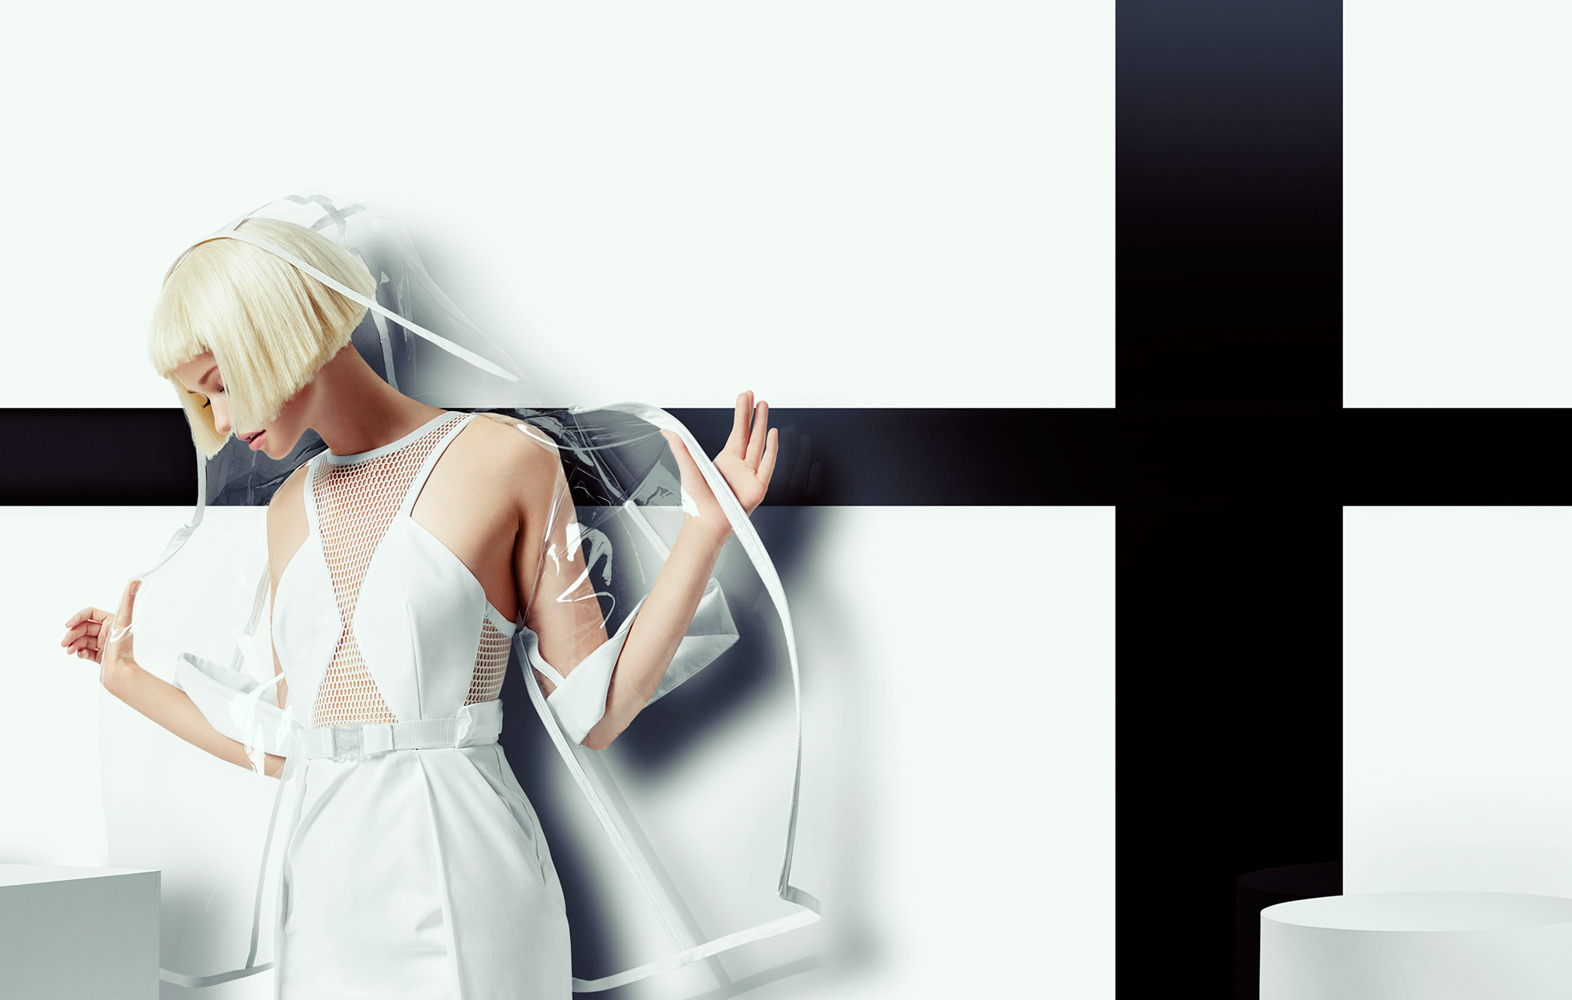 Woman with short blond hair wearing white dress and clear transparent hooded coat - Mark DeLong: Fashion Gallery